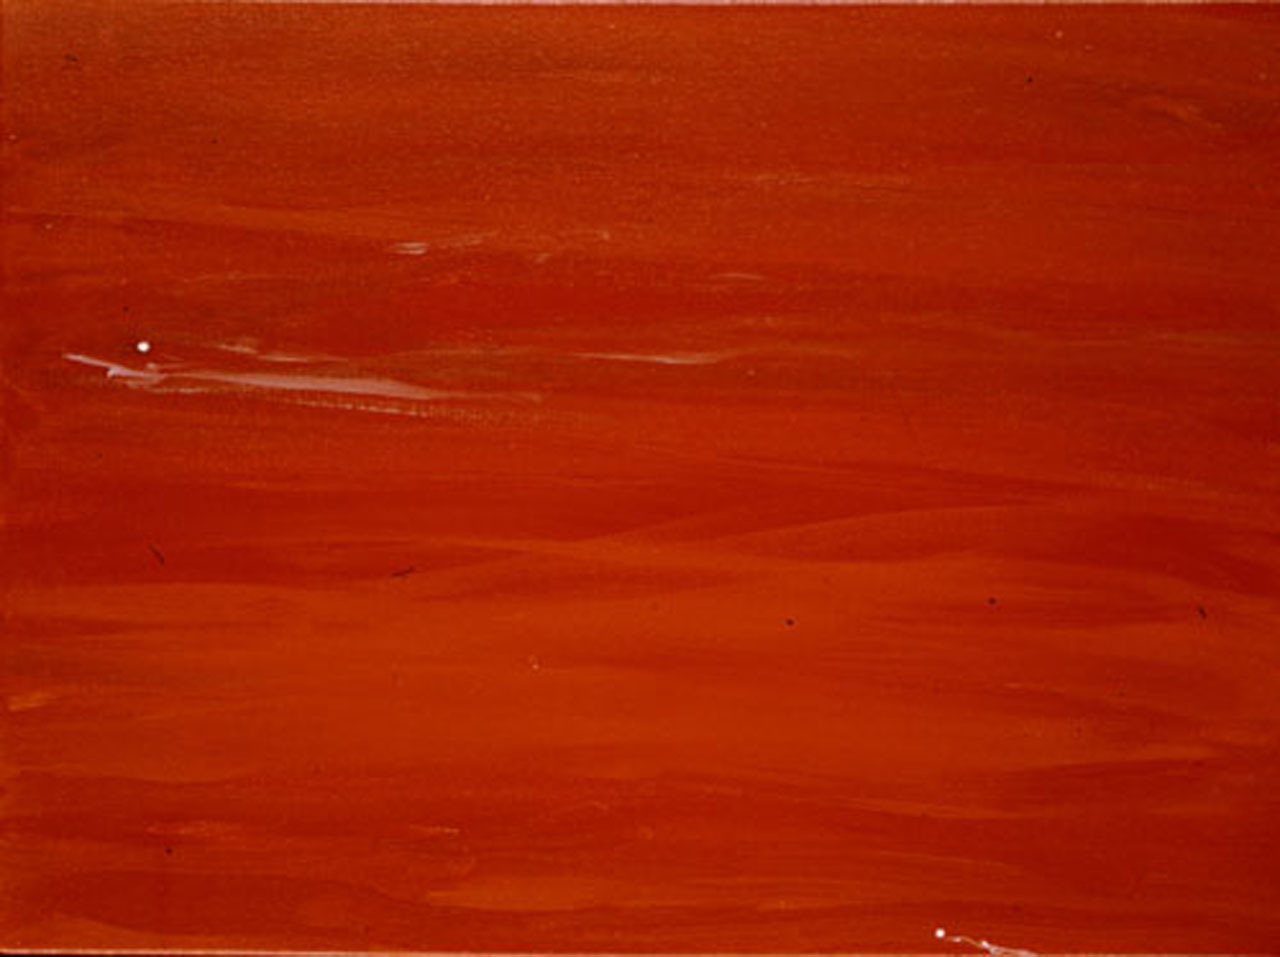 In The Golden Red Light (A Painting For Meditation)